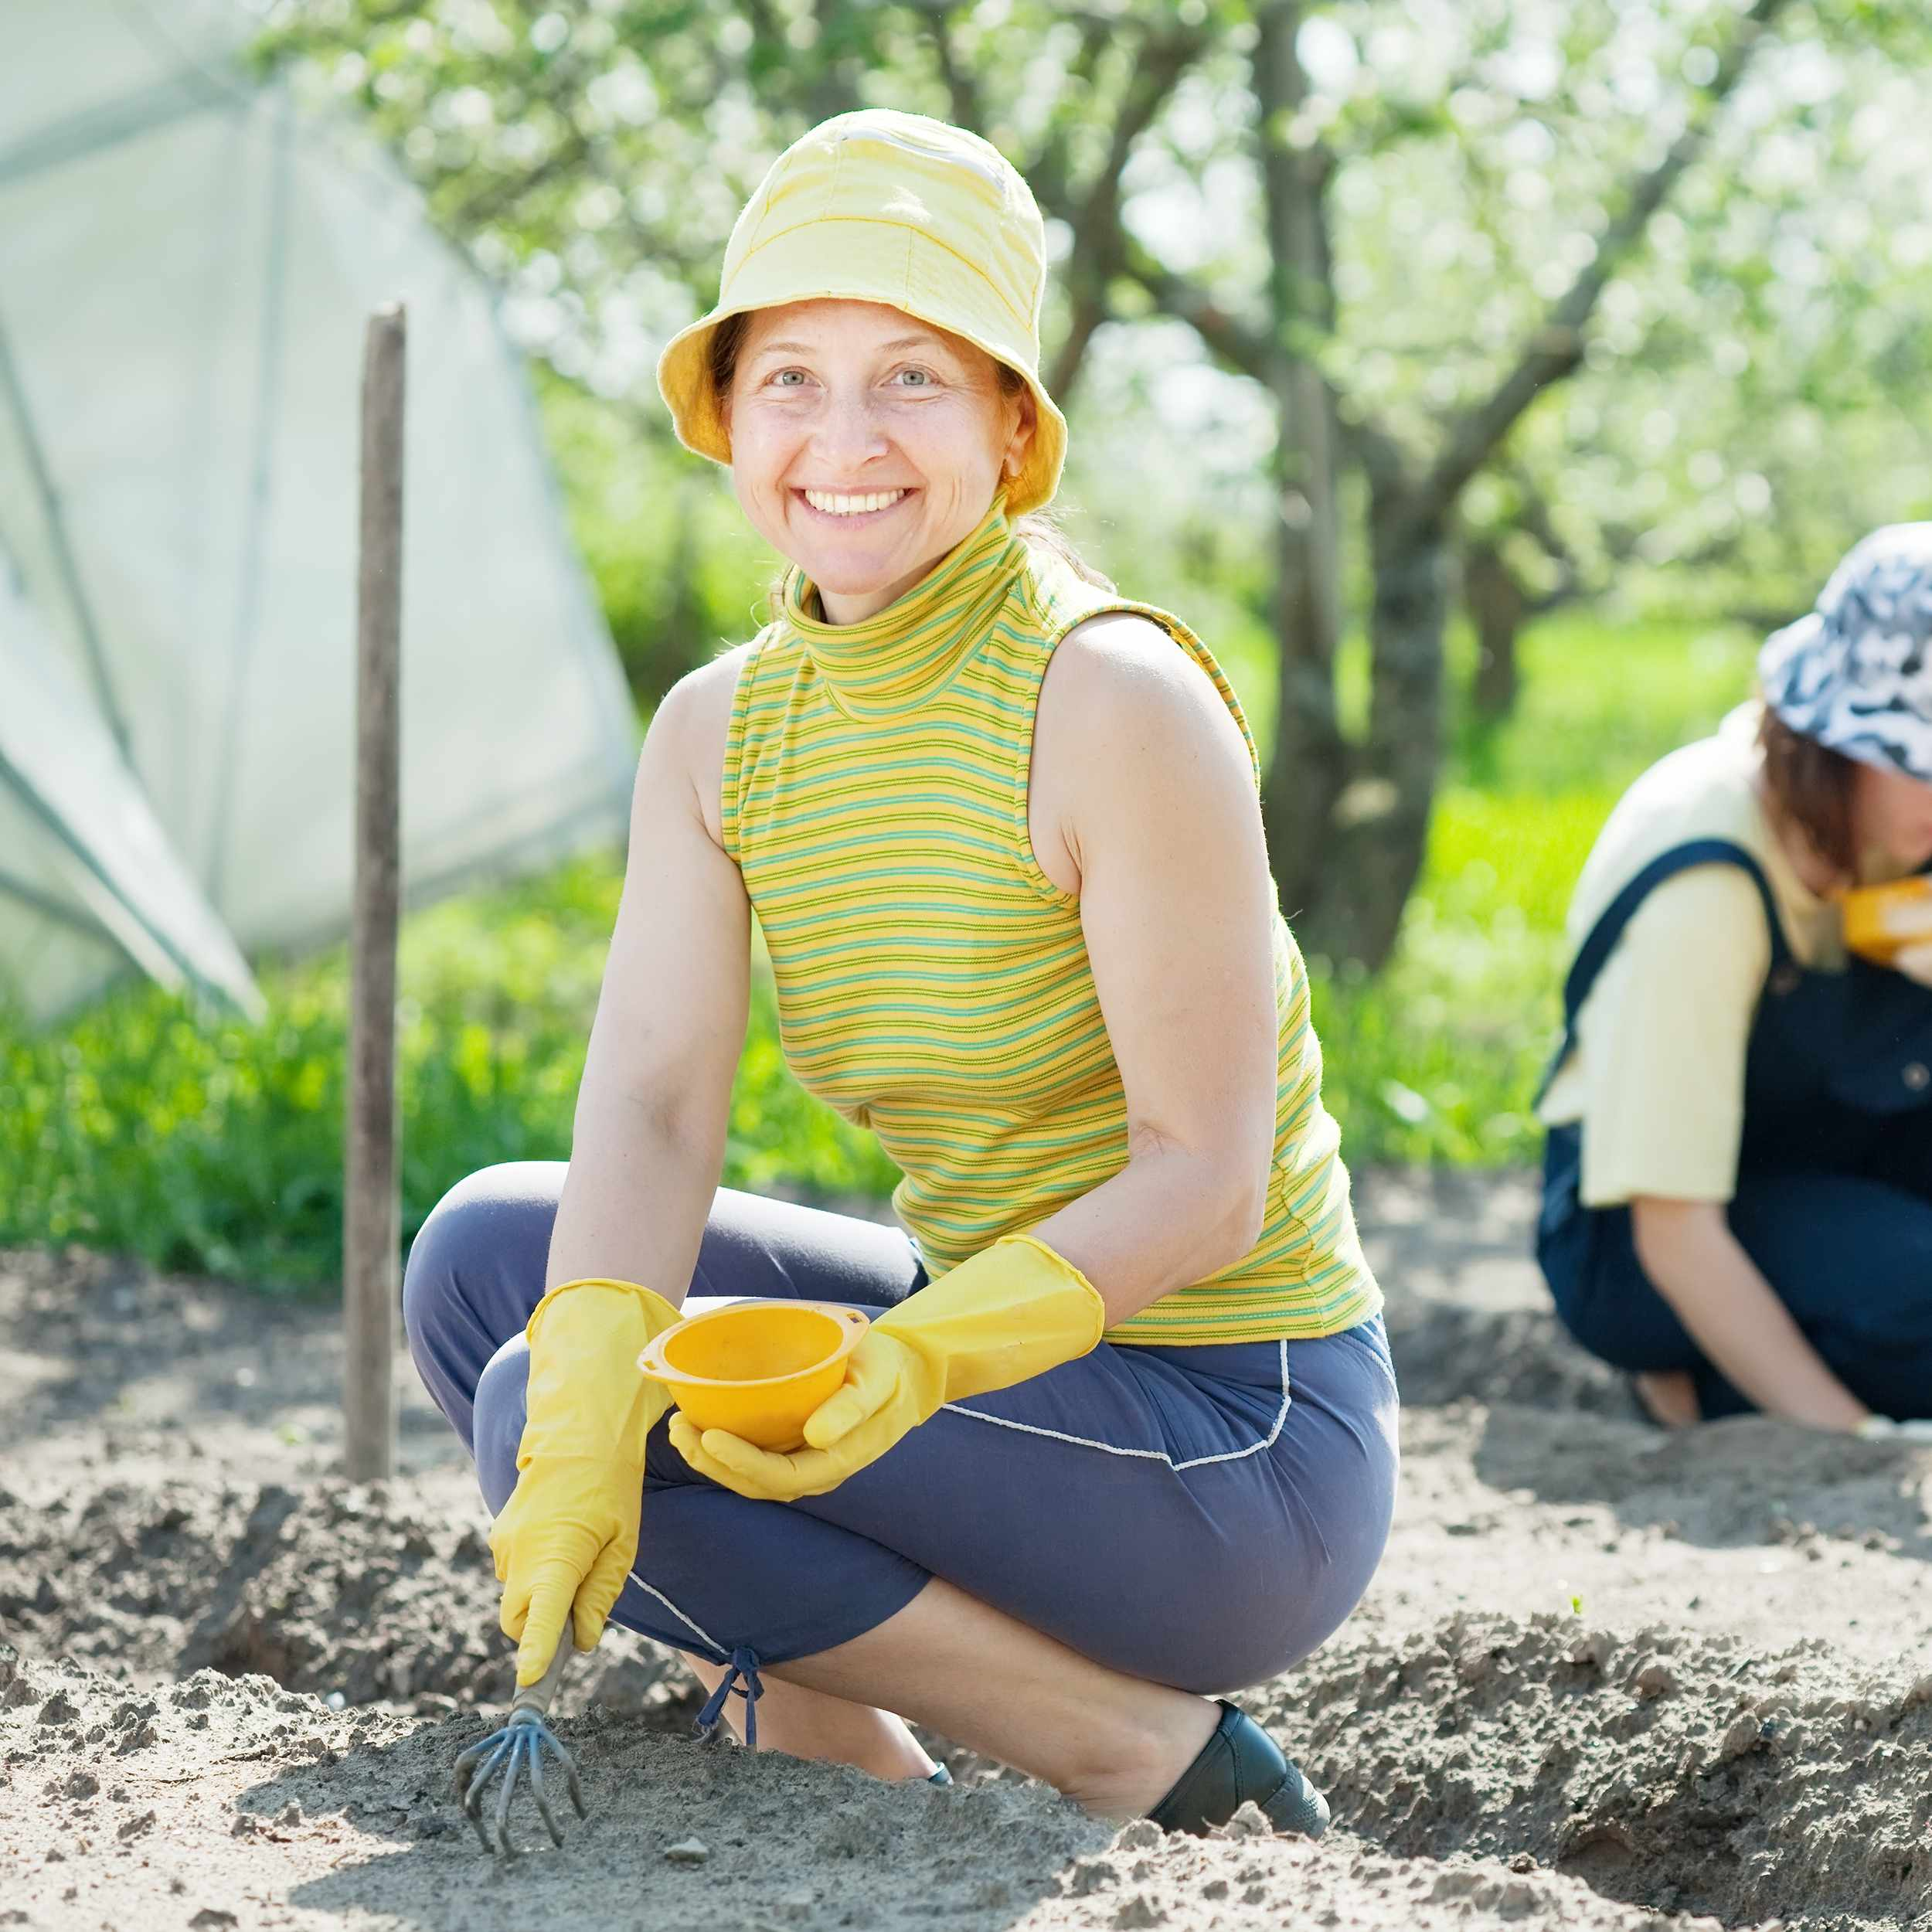 a smiling woman wearing a hat, crouched down, working in a garden, with a younger woman and child in the background